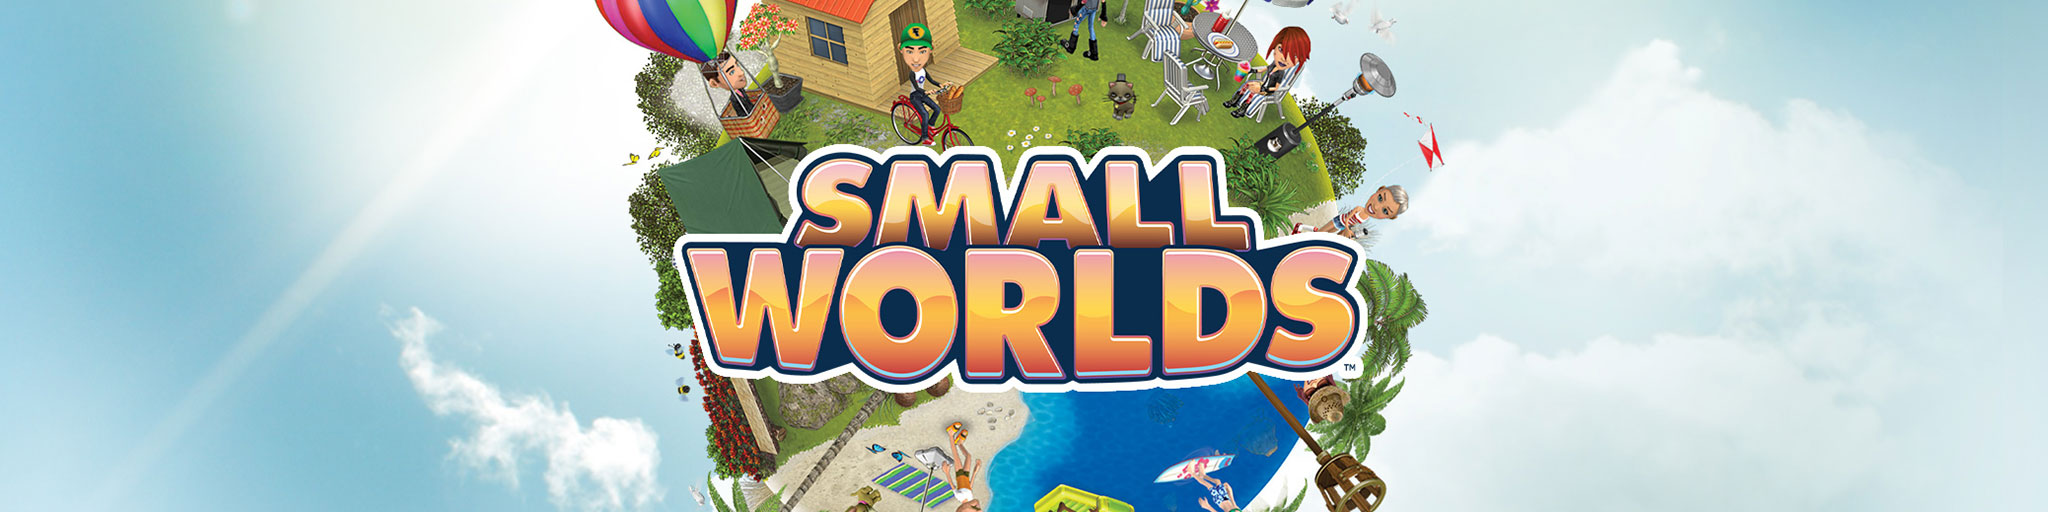 SmallWorlds feature image